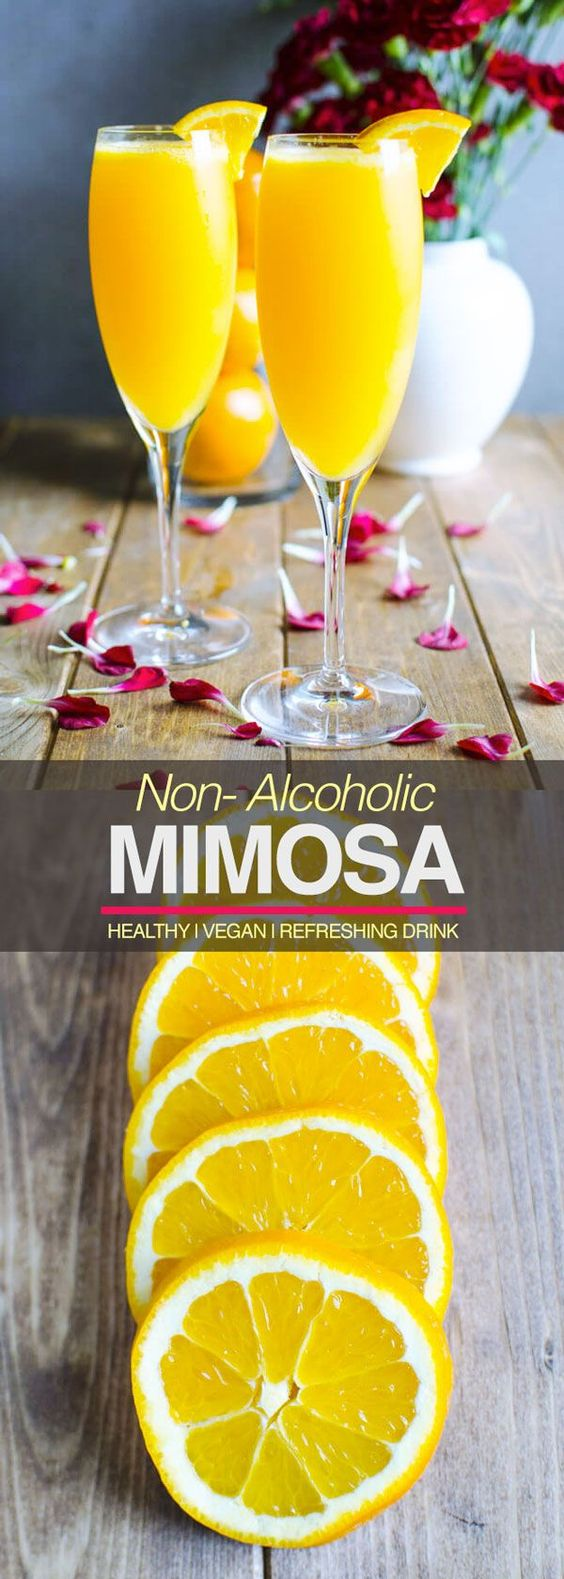 Best Non-Alcoholic Mimosa Recipe via Watch What U Eat - 2 ingredients, simplest, and quickest an amazing brunch drink. It is also healthy, non alcoholic & a naturally sweetened drink! The BEST Easy Non-Alcoholic Drinks Recipes - Creative Mocktails and Family Friendly, Alcohol-Free, Big Batch Party Beverages for a Crowd! #mocktails #virgindrinks #alcoholfreedrinks #nonalcoholicdrinks #familyfriendlydrinks #partypunch #partydrinks #newyearseve #partydrinkrecipes